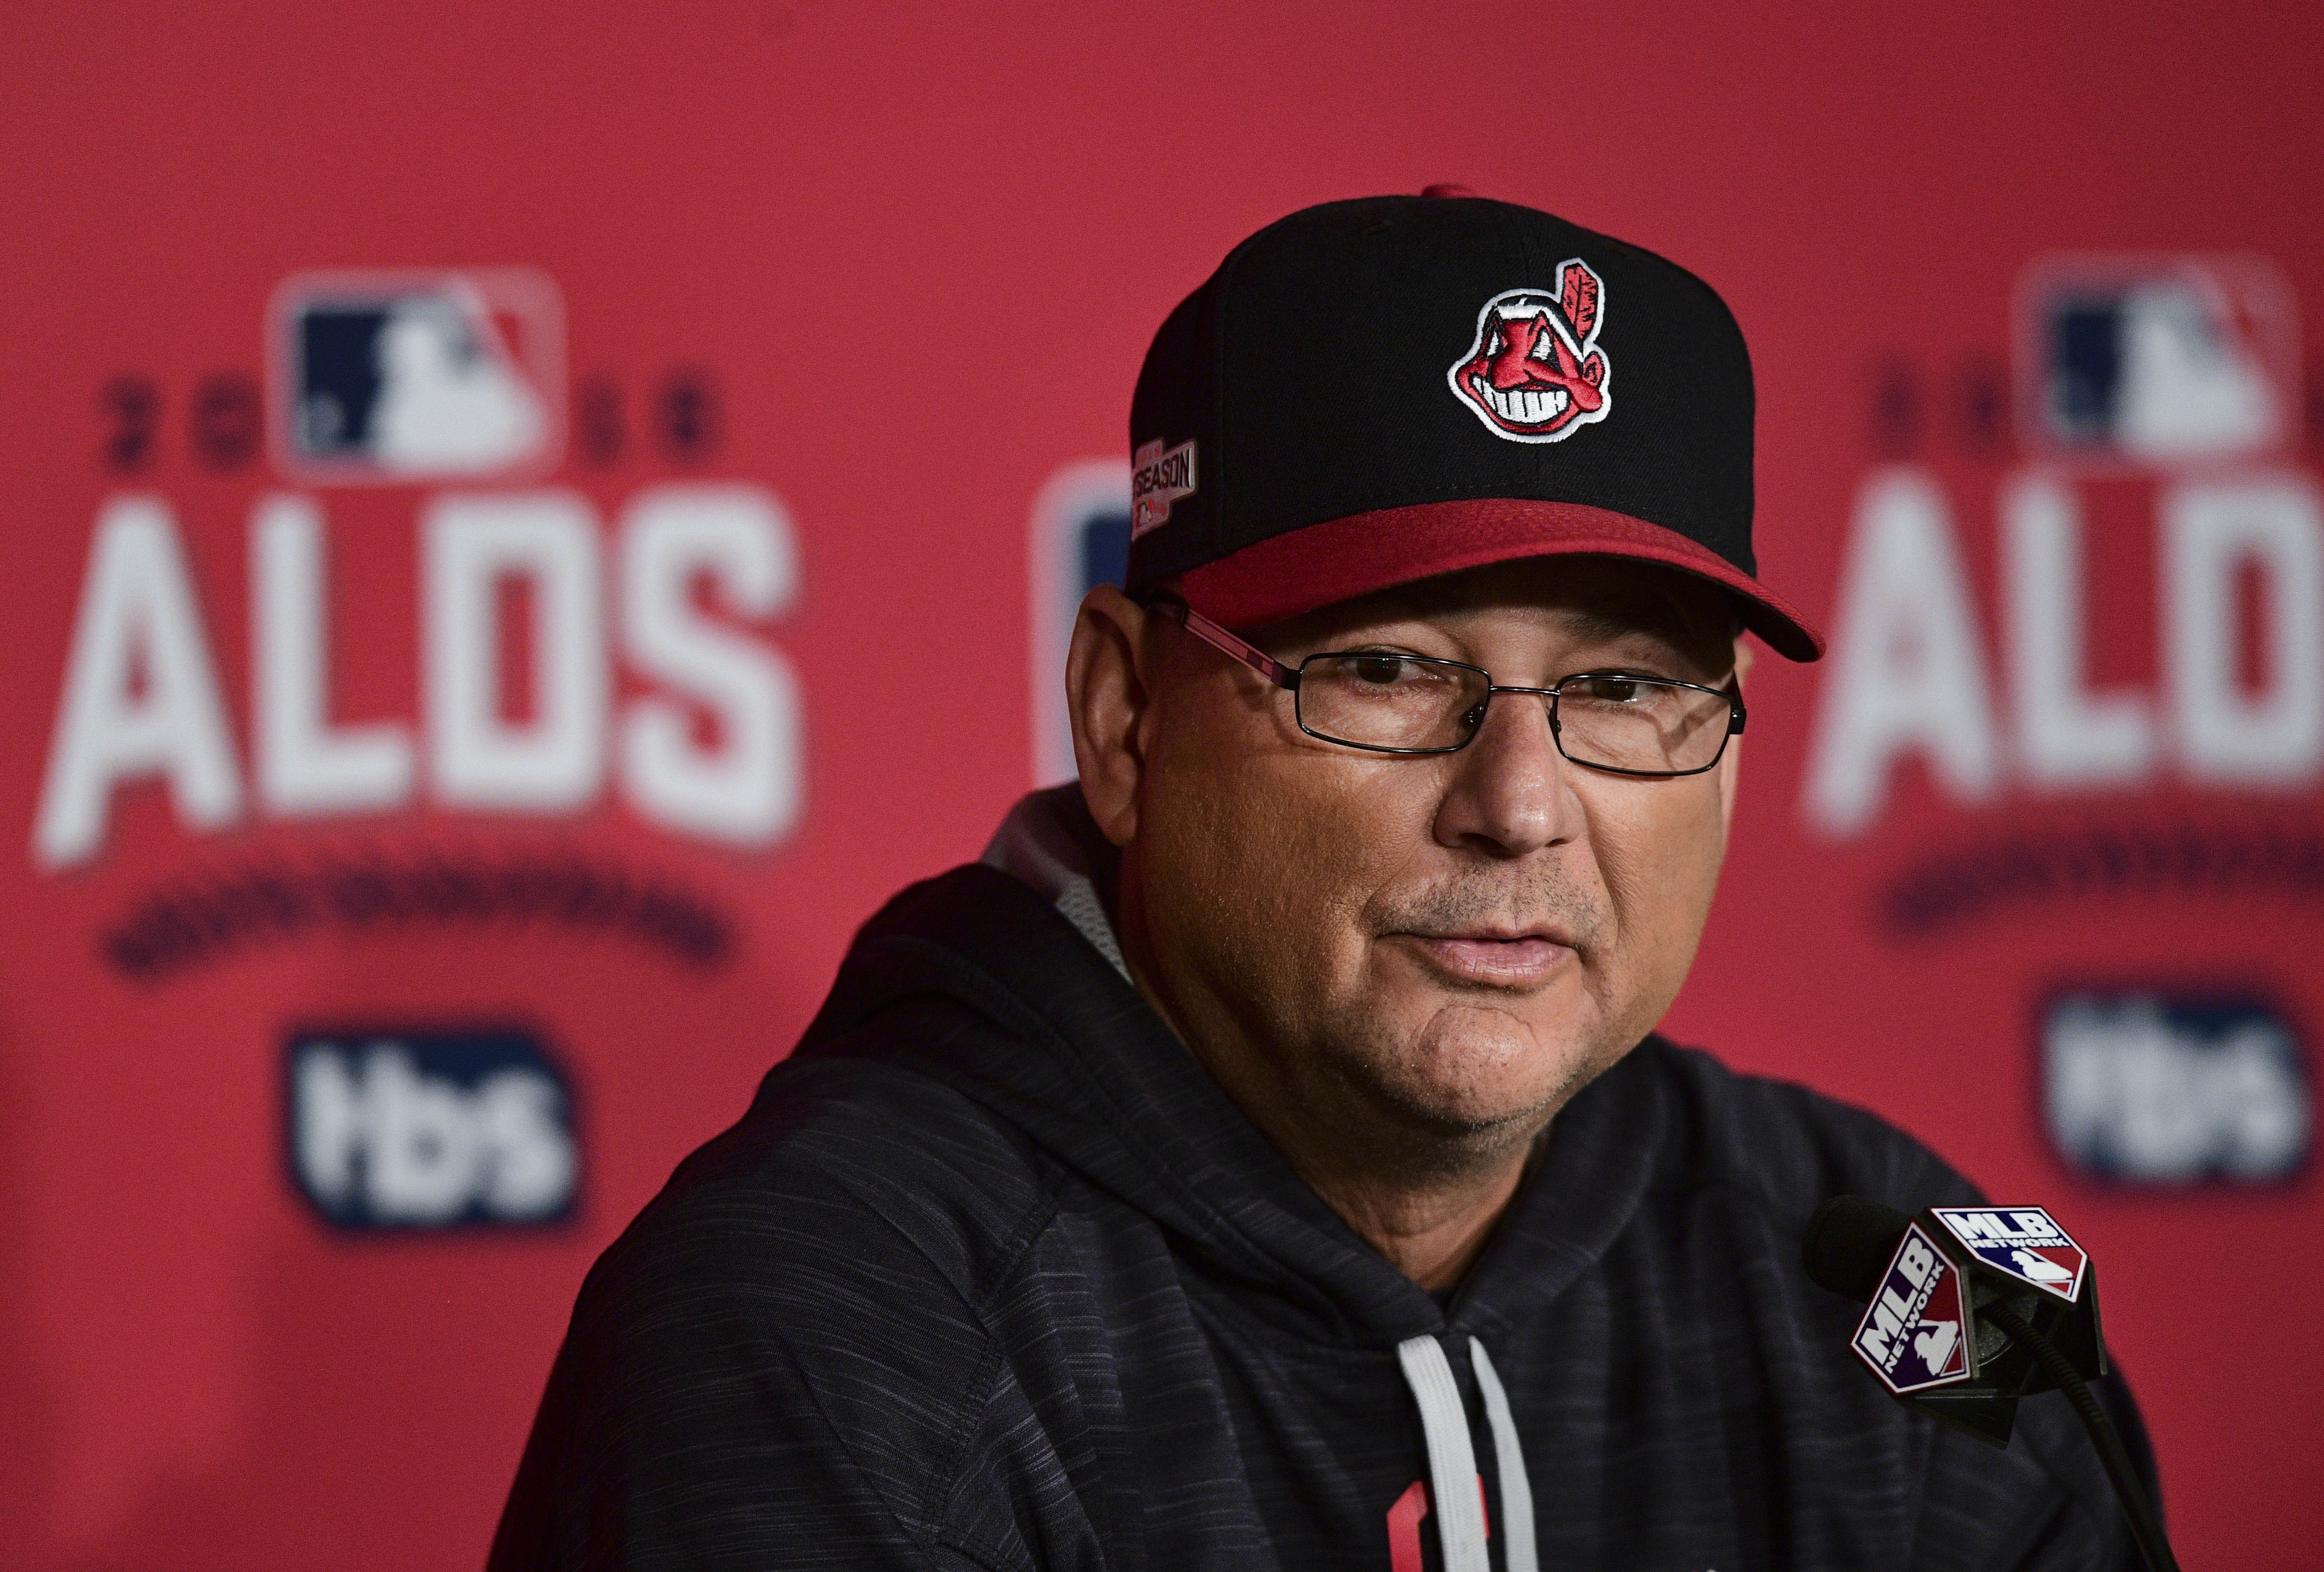 Cleveland Indians manager Terry Francona listens to a question from the media before practice in Cleveland, Wednesday, Oct. 5, 2016. Cleveland meets the Boston Red Sox in Game 1 of the American League Division Series of baseball Thursday. (AP Photo/David